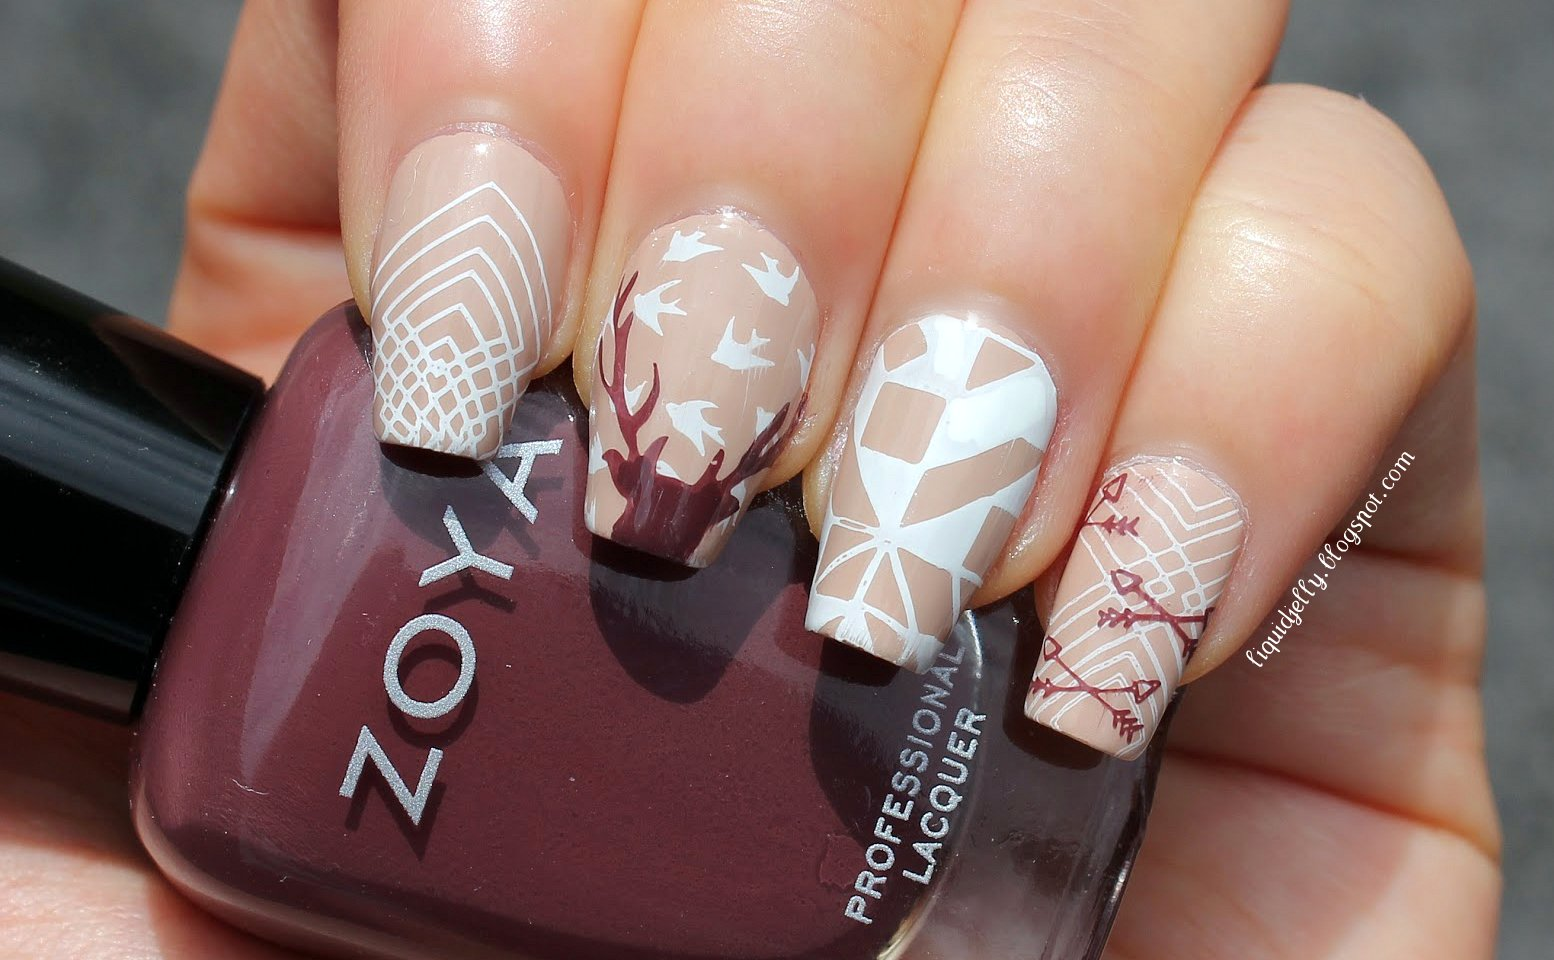 Liquid Jelly Nail Art Oh Deer Stamped With Moyou London